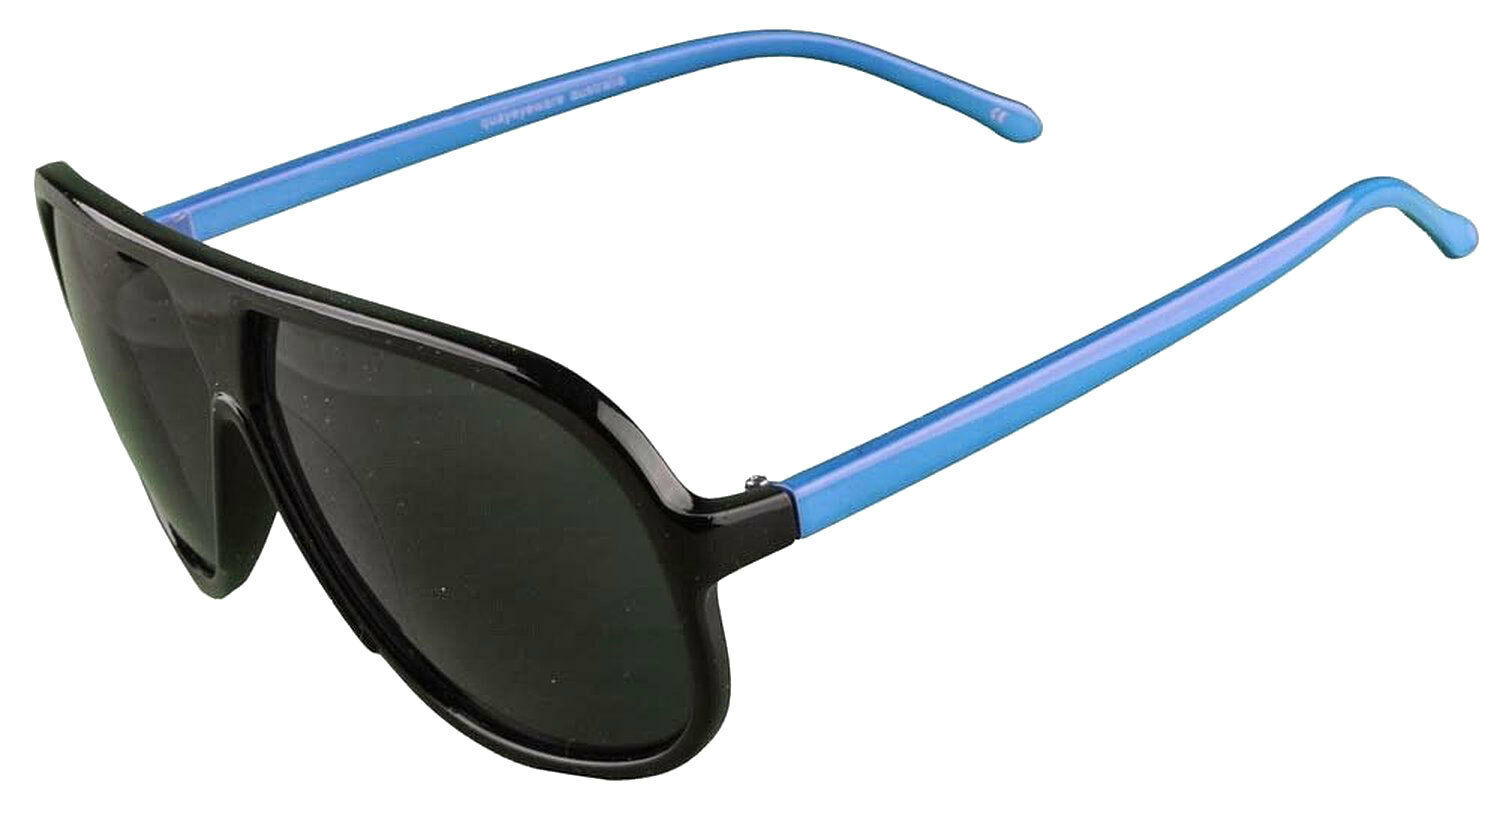 Quay 1435 100% UV Protection Acrylic Black Blue Aviator Sunglasses Dark Shades